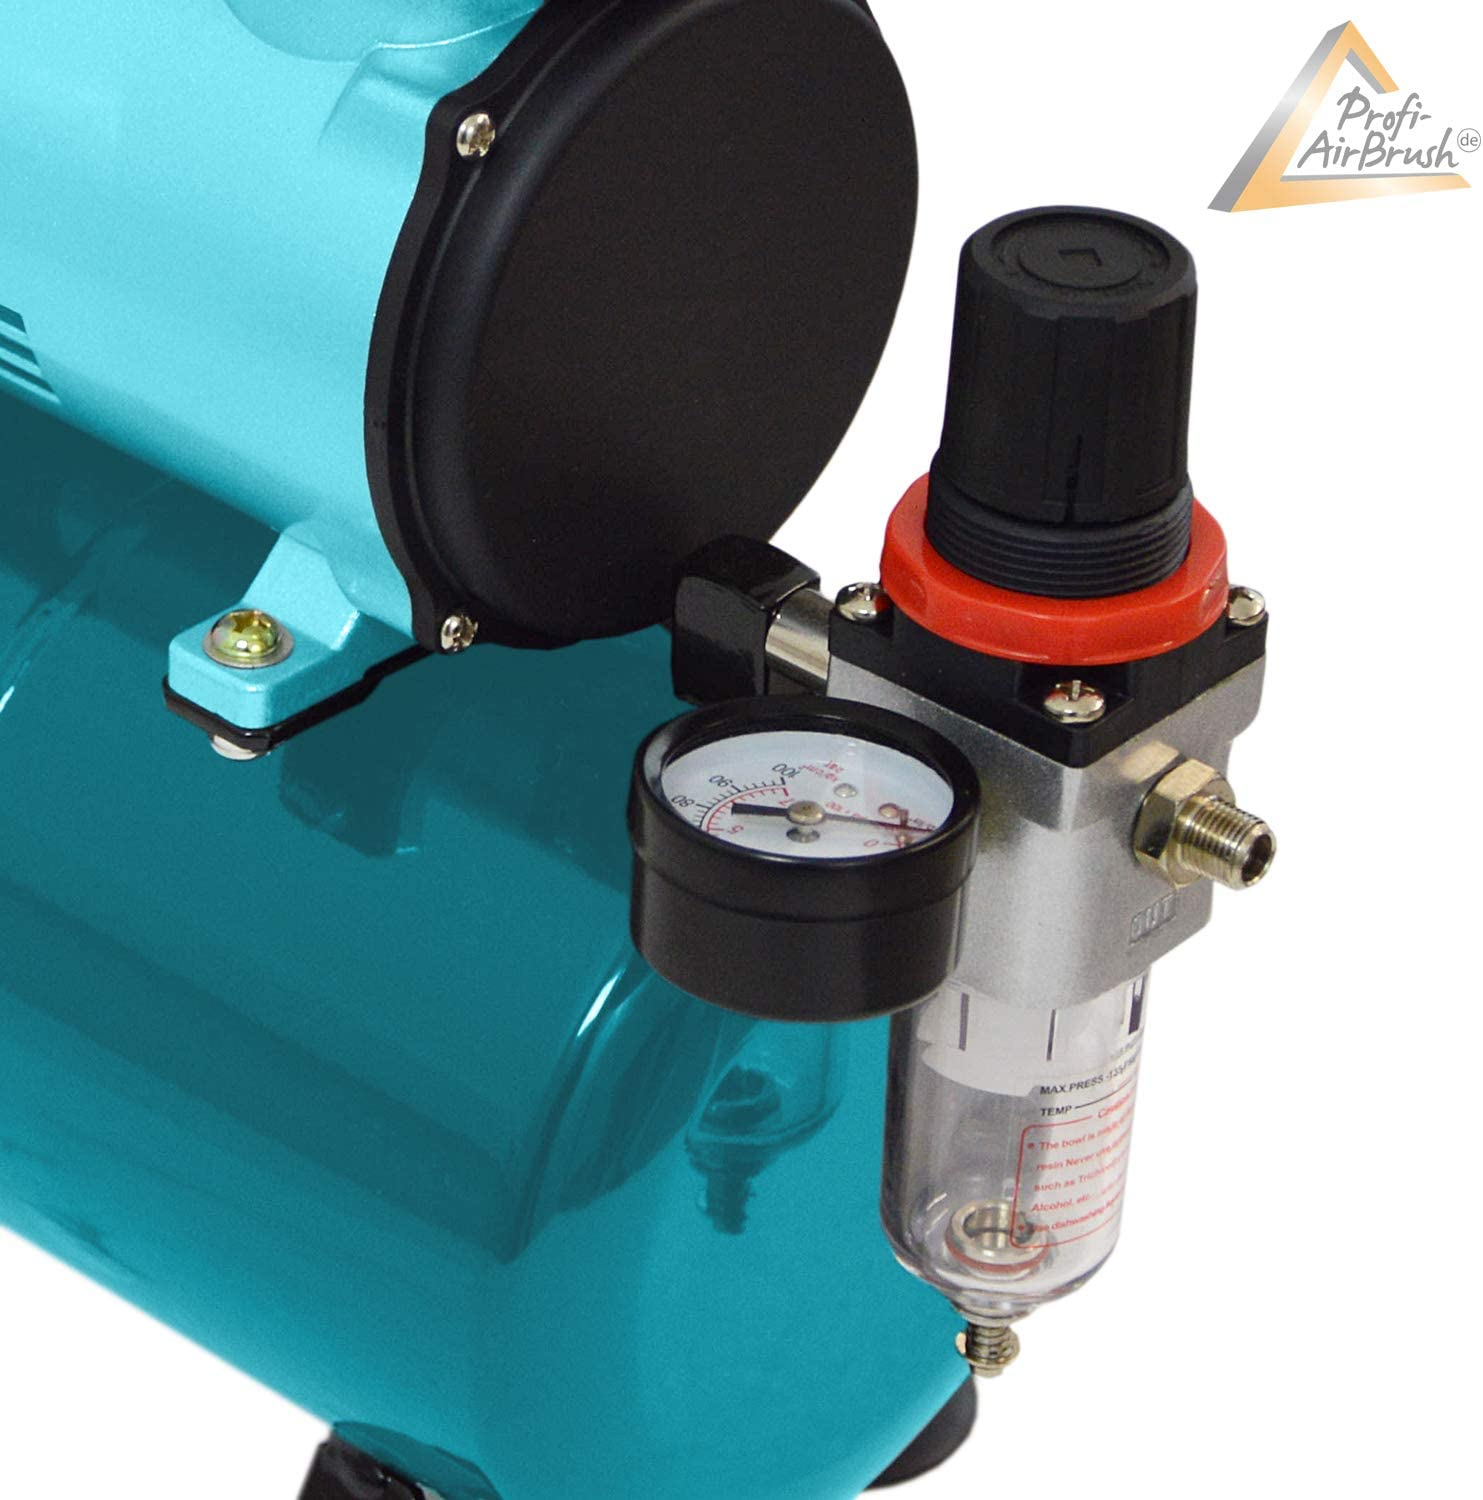 POWERFULL PROFESSIONAL AIRBRUSH COMPRESSOR AIRBRUSHKOMPRESSOR with 2 selectable POWER settings